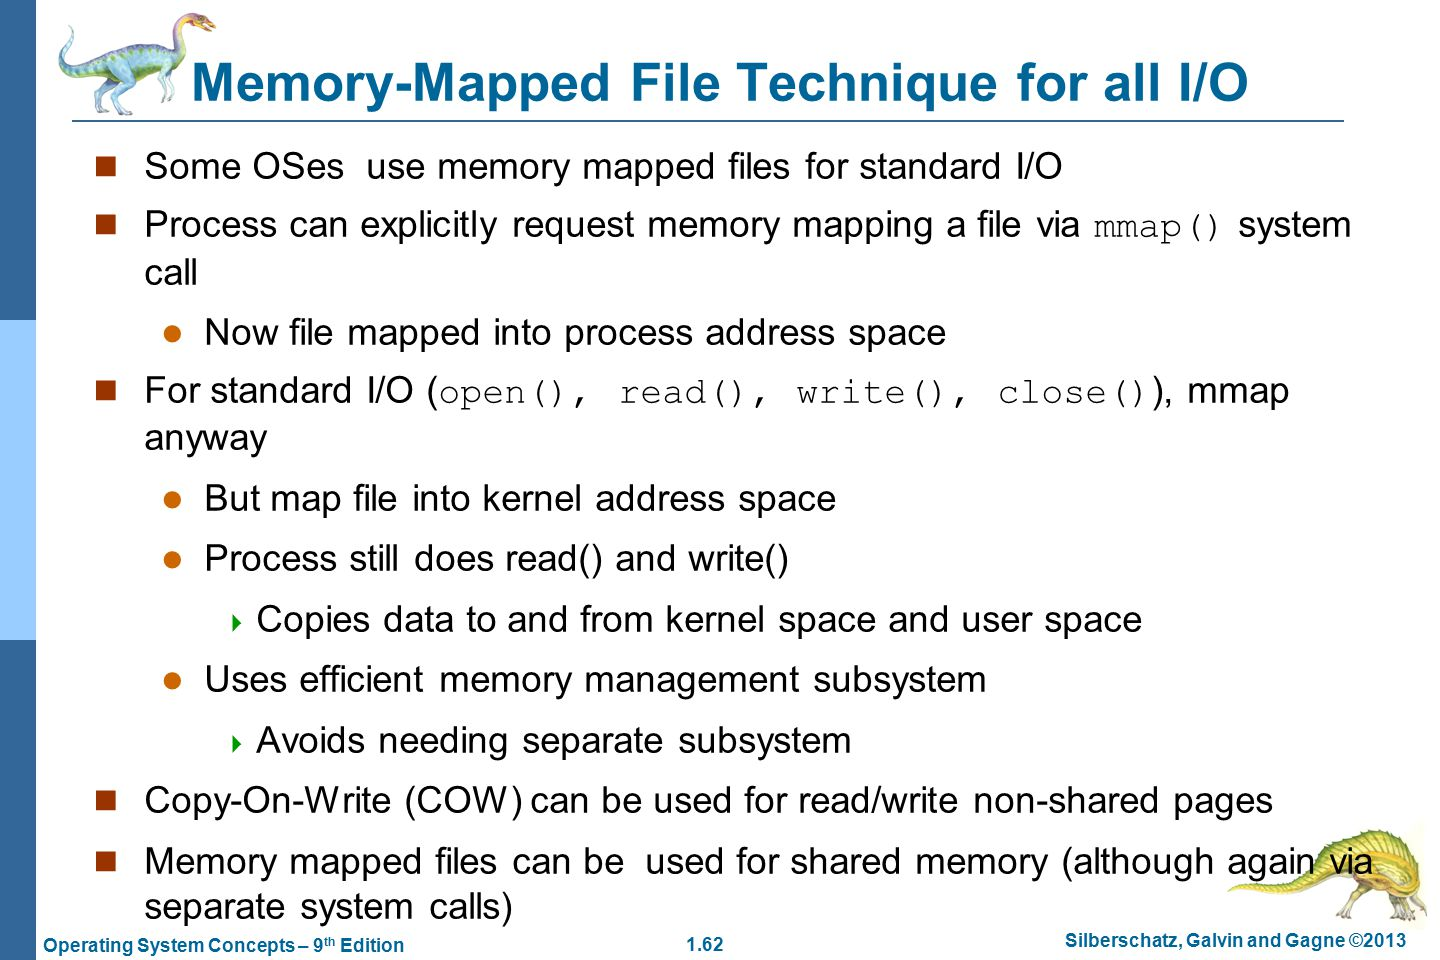 1.62 Silberschatz, Galvin and Gagne ©2013 Operating System Concepts – 9 th Edition Memory-Mapped File Technique for all I/O Some OSes use memory mapped files for standard I/O Process can explicitly request memory mapping a file via mmap() system call Now file mapped into process address space For standard I/O ( open(), read(), write(), close() ), mmap anyway But map file into kernel address space Process still does read() and write()  Copies data to and from kernel space and user space Uses efficient memory management subsystem  Avoids needing separate subsystem Copy-On-Write (COW) can be used for read/write non-shared pages Memory mapped files can be used for shared memory (although again via separate system calls)